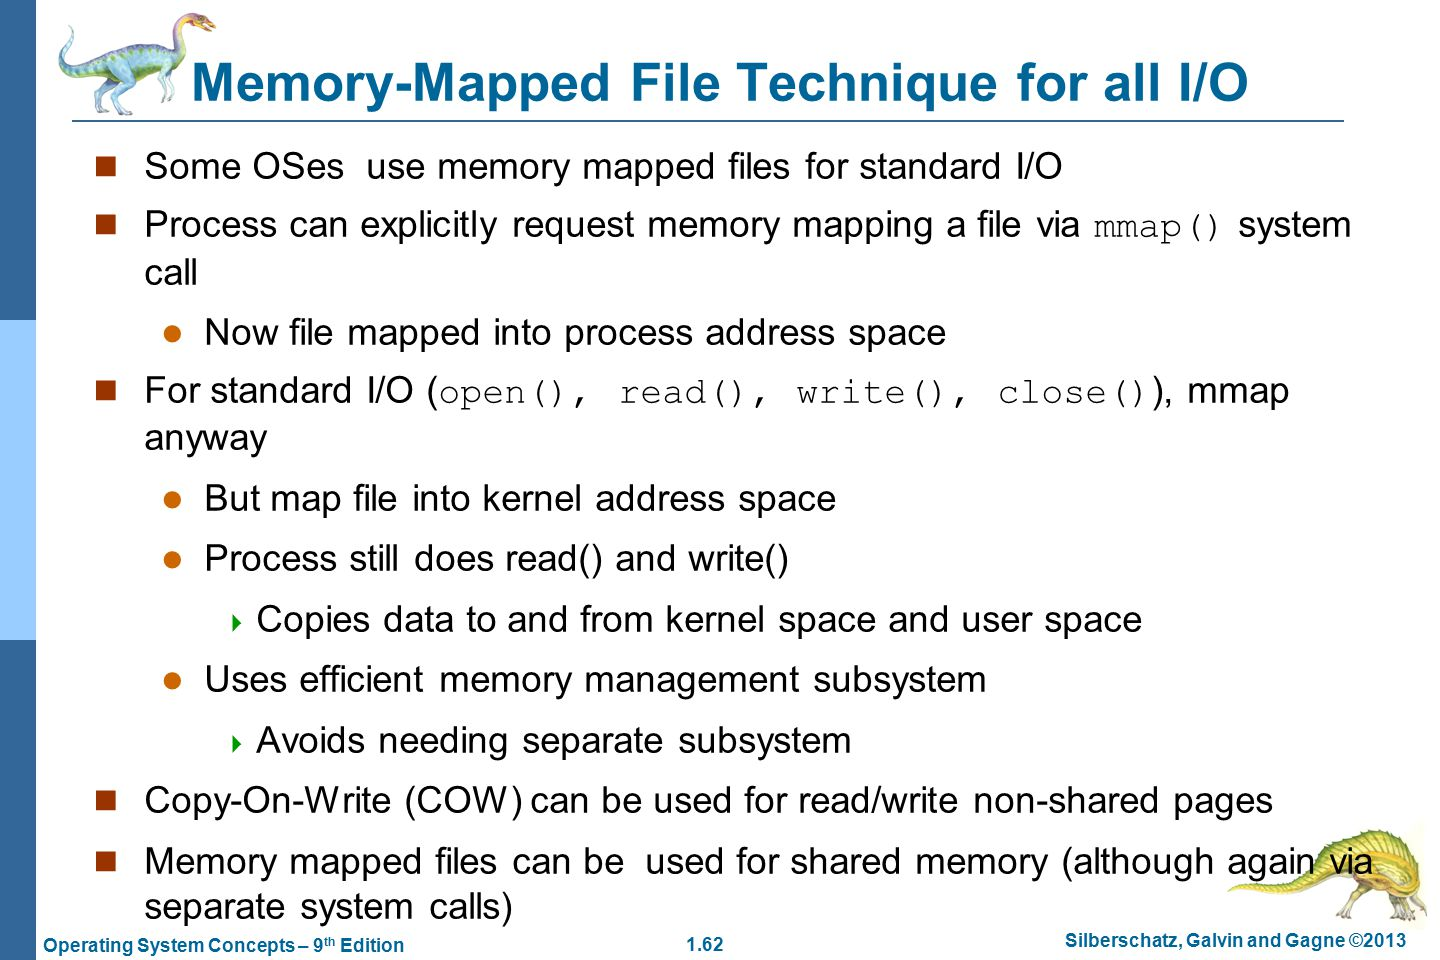 1.62 Silberschatz, Galvin and Gagne ©2013 Operating System Concepts – 9 th Edition Memory-Mapped File Technique for all I/O Some OSes use memory mapped files for standard I/O Process can explicitly request memory mapping a file via mmap() system call Now file mapped into process address space For standard I/O ( open(), read(), write(), close() ), mmap anyway But map file into kernel address space Process still does read() and write()  Copies data to and from kernel space and user space Uses efficient memory management subsystem  Avoids needing separate subsystem Copy-On-Write (COW) can be used for read/write non-shared pages Memory mapped files can be used for shared memory (although again via separate system calls)